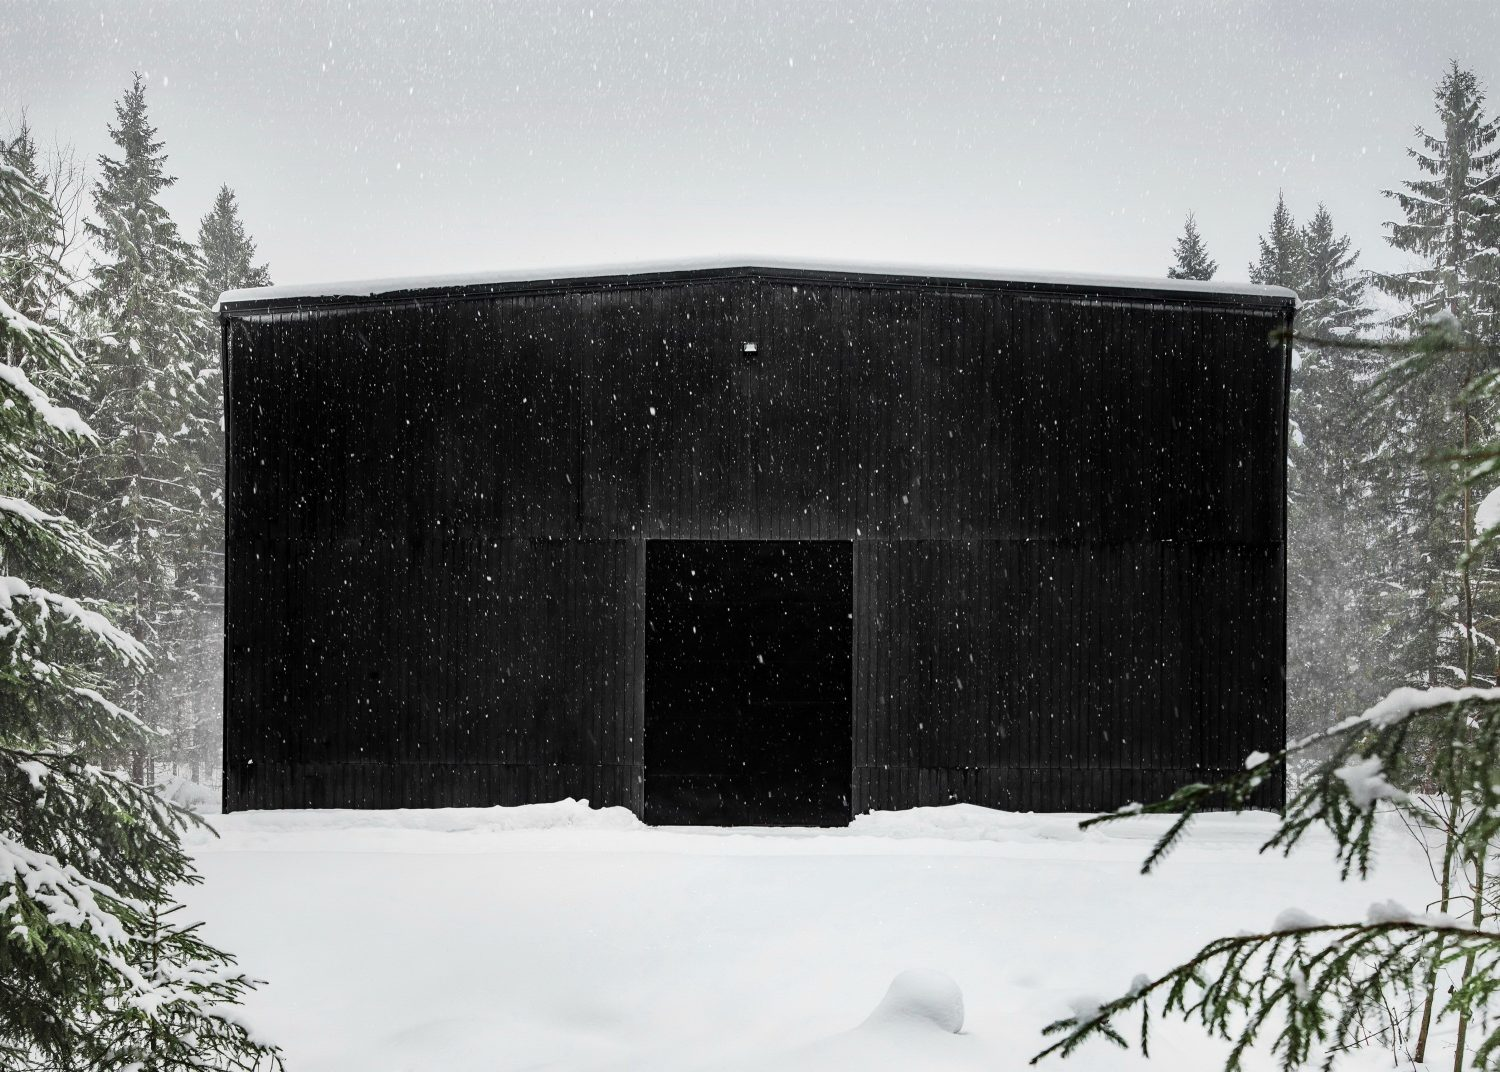 Kyrö Barrell Storage Building by Avanto Architects